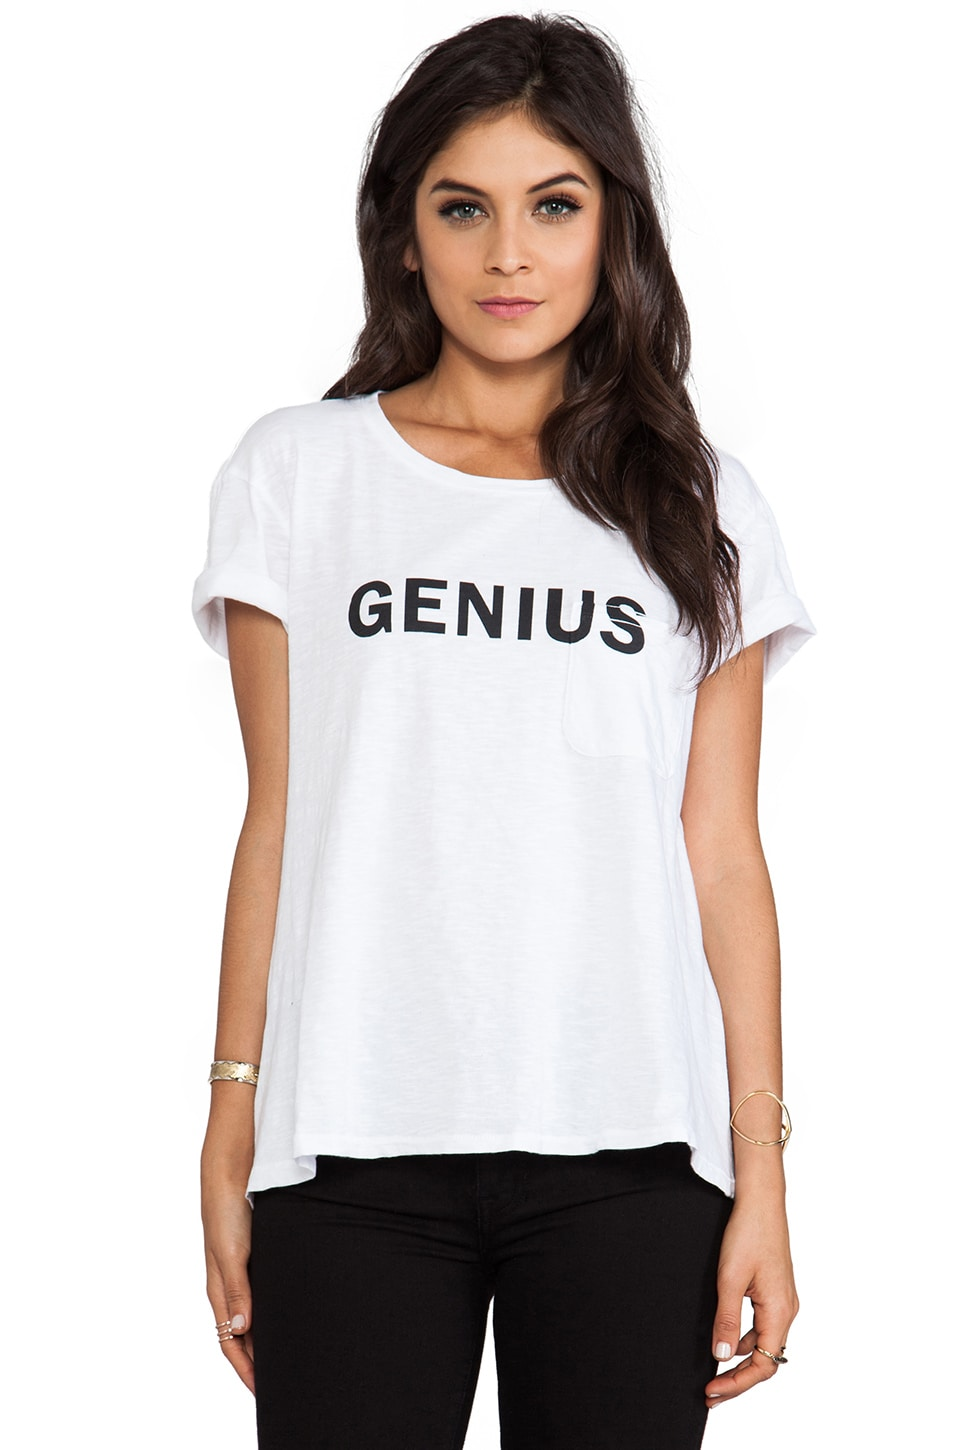 TEXTILE Elizabeth and James Genius Bowery Tee in White/Black